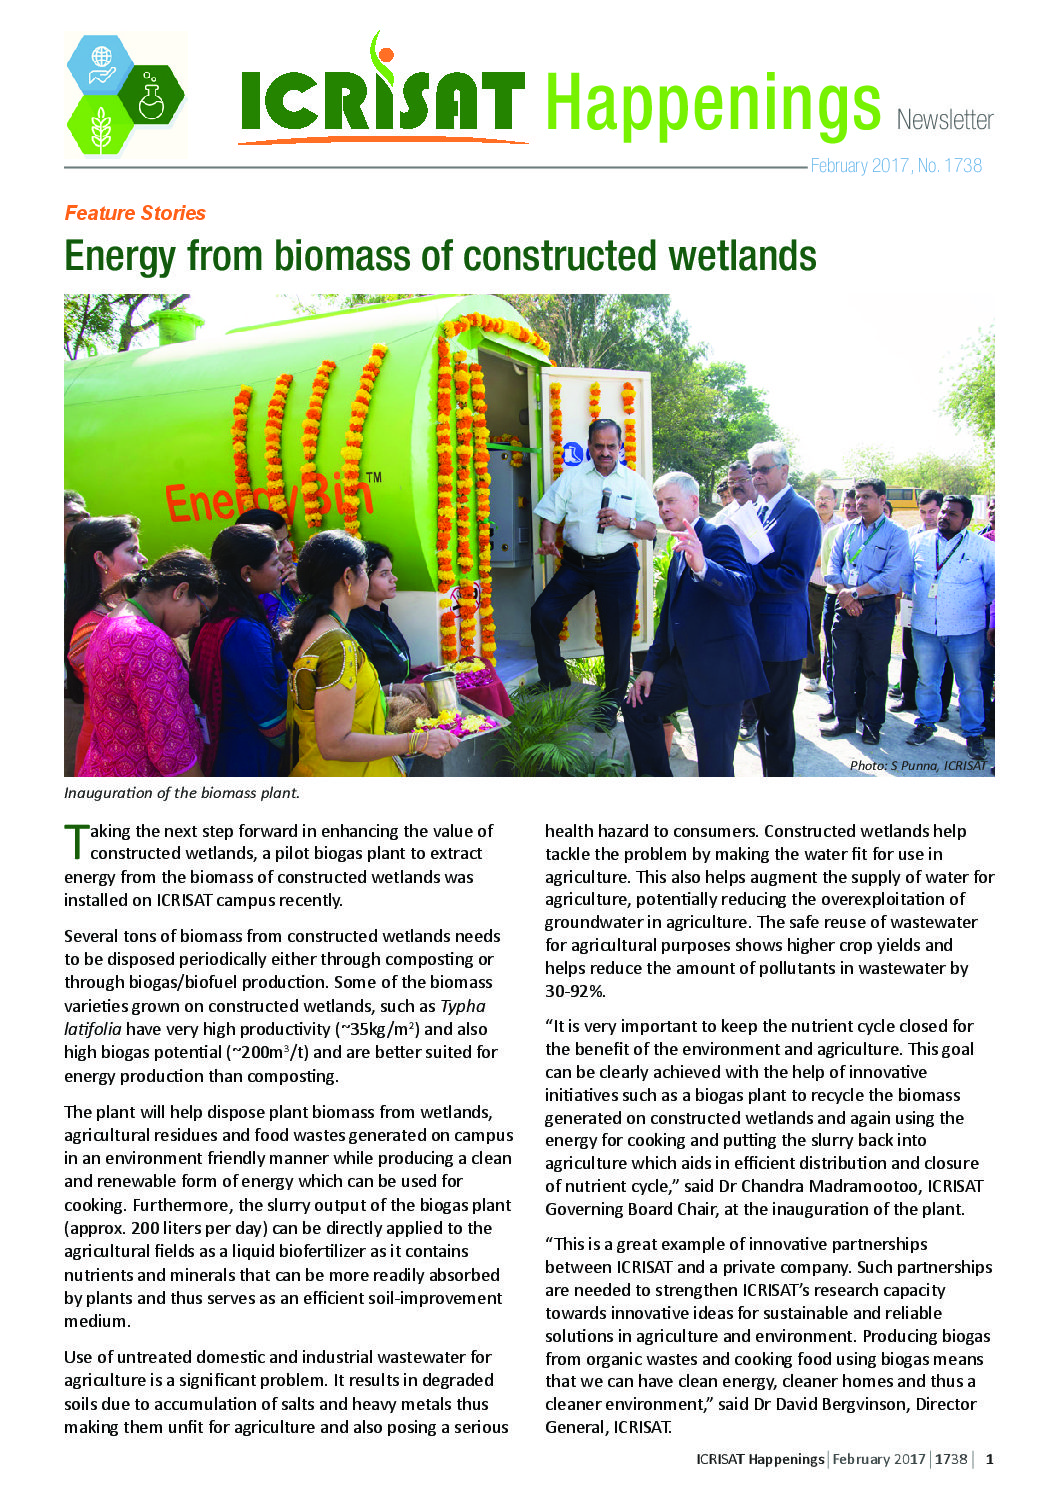 Inauguration of the biomass plant. Photo: S Punna, ICRISAT